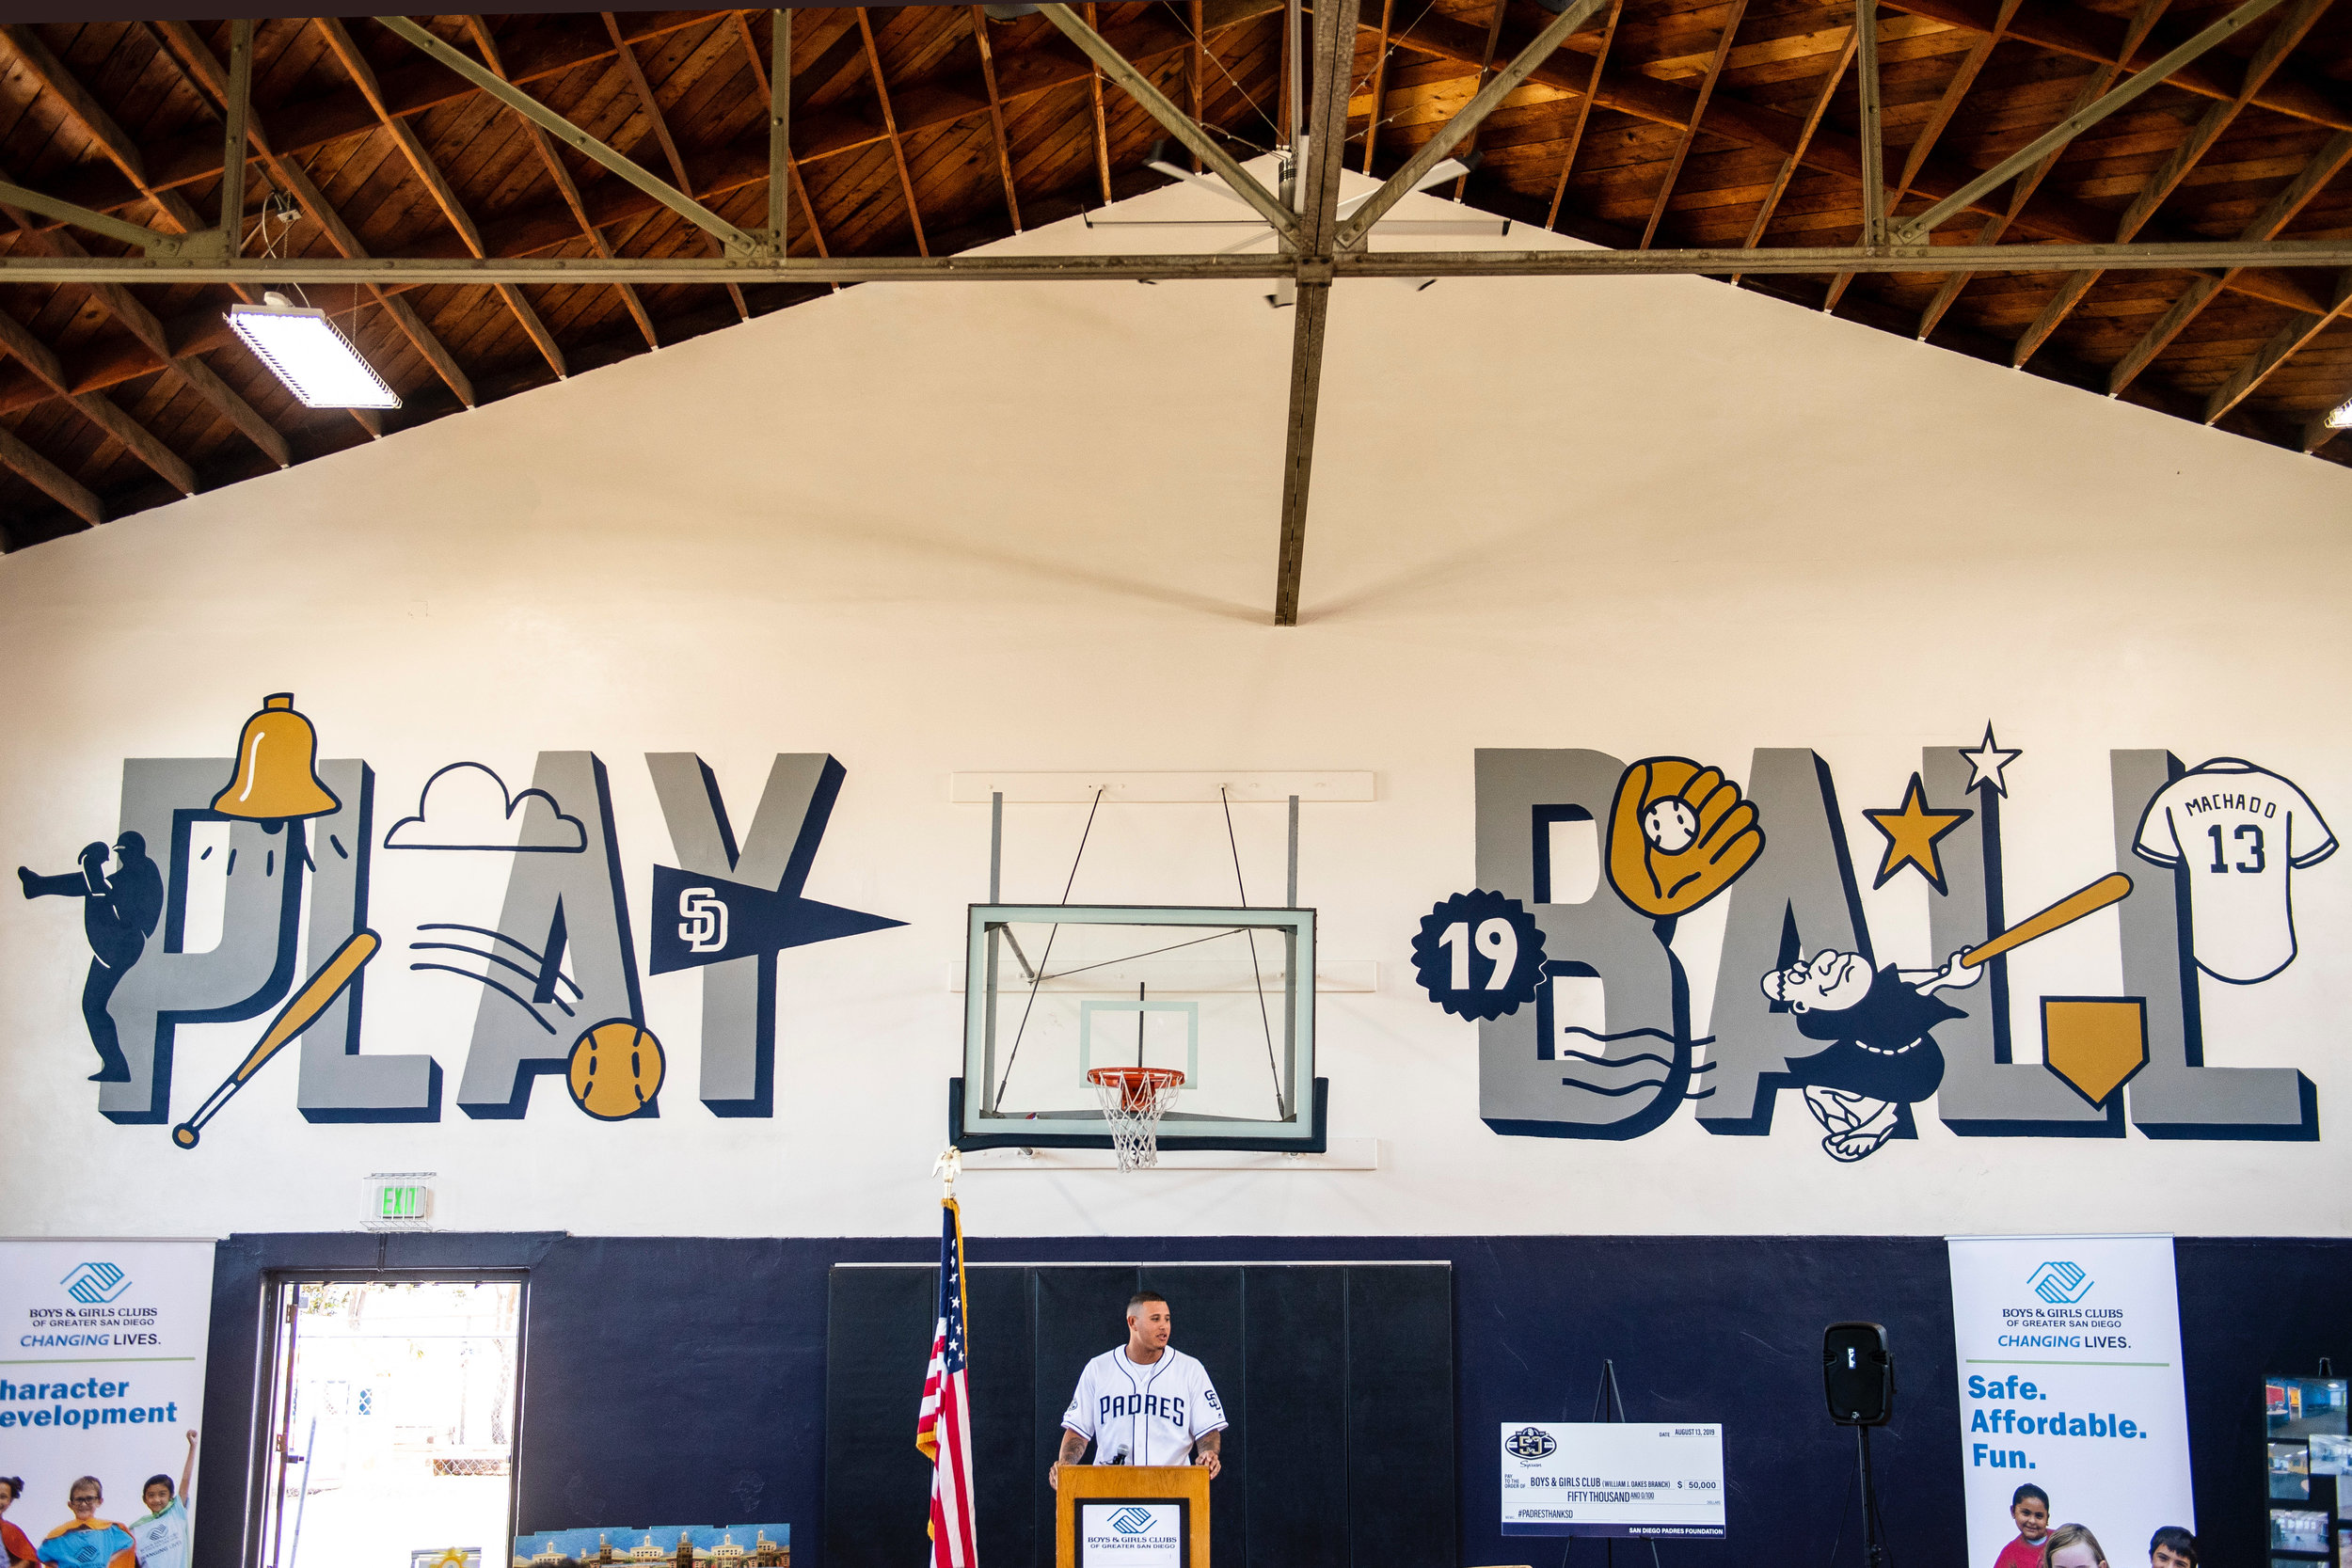 Padres Customer Lettering Mural Play Ball MLB with Logos and Players Represented Manny Machado speaking